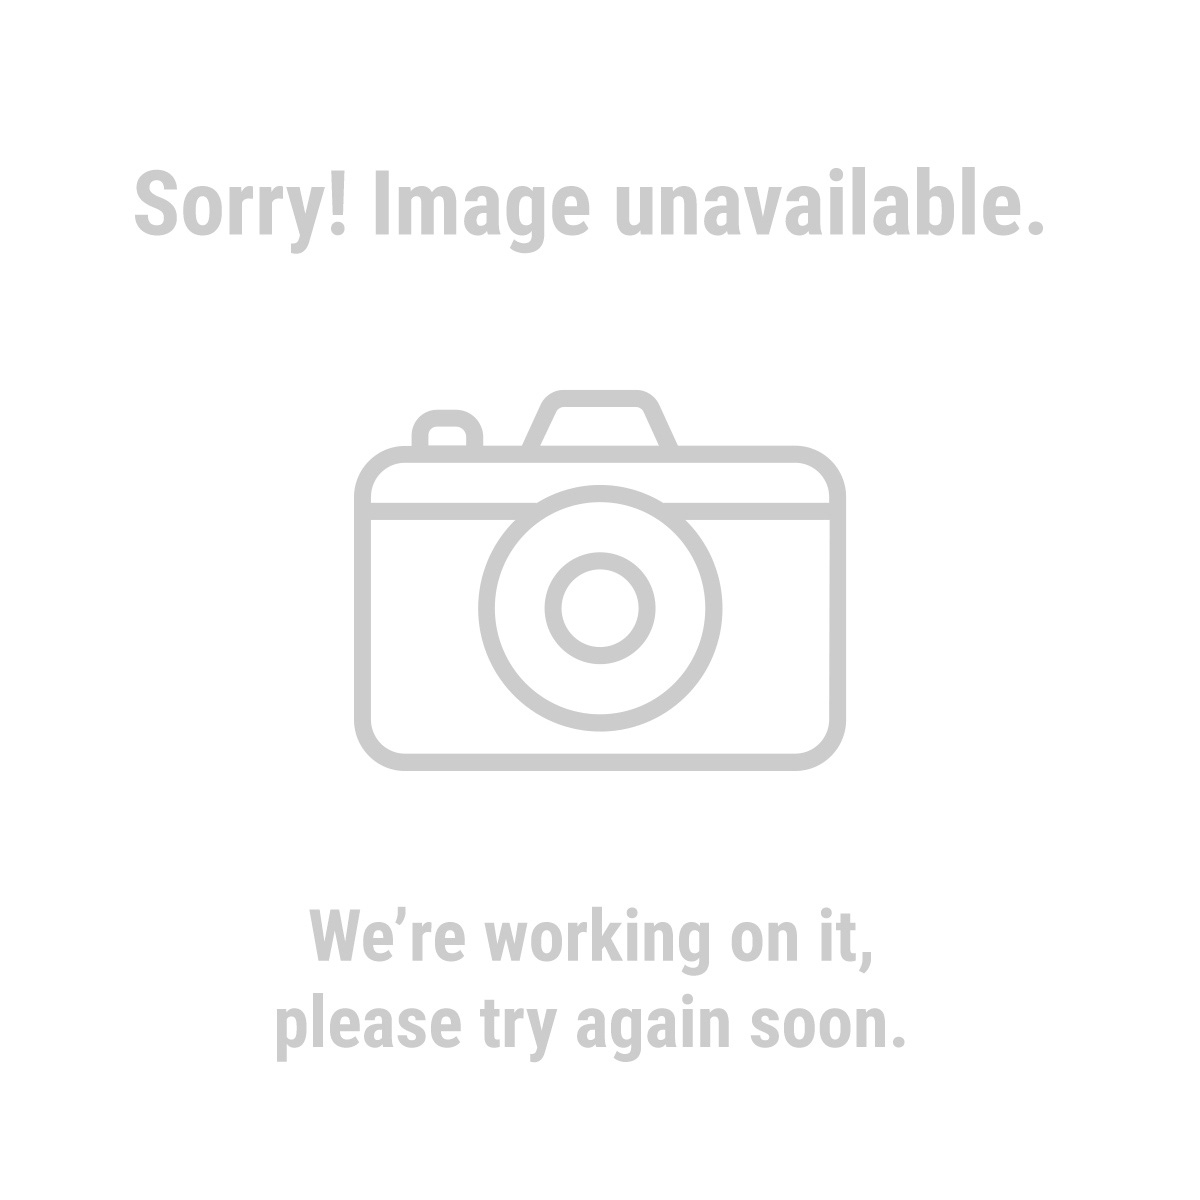 Haul-Master® 30324 1 Ton 16 ft. Extra Long Lift Chain Hoist